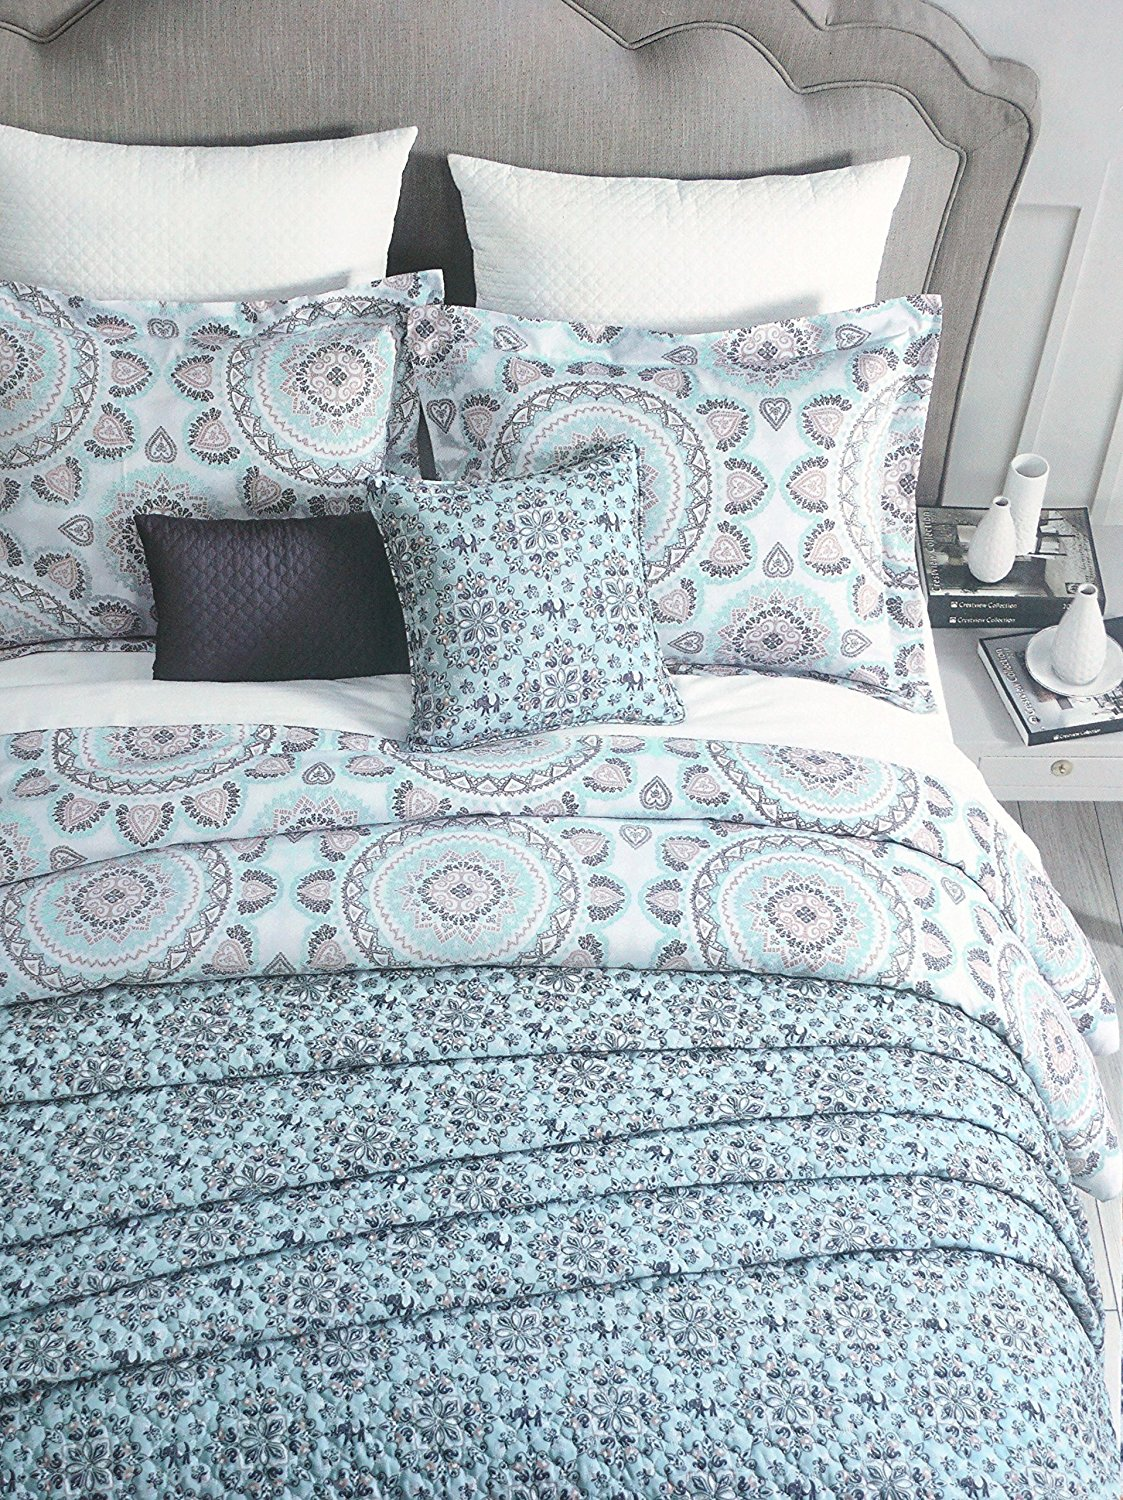 Get Quotations · Cynthia Rowley Bedding 3 Piece Duvet Cover Set Round  Medallion Hearts Pattern In Shades Of Blue